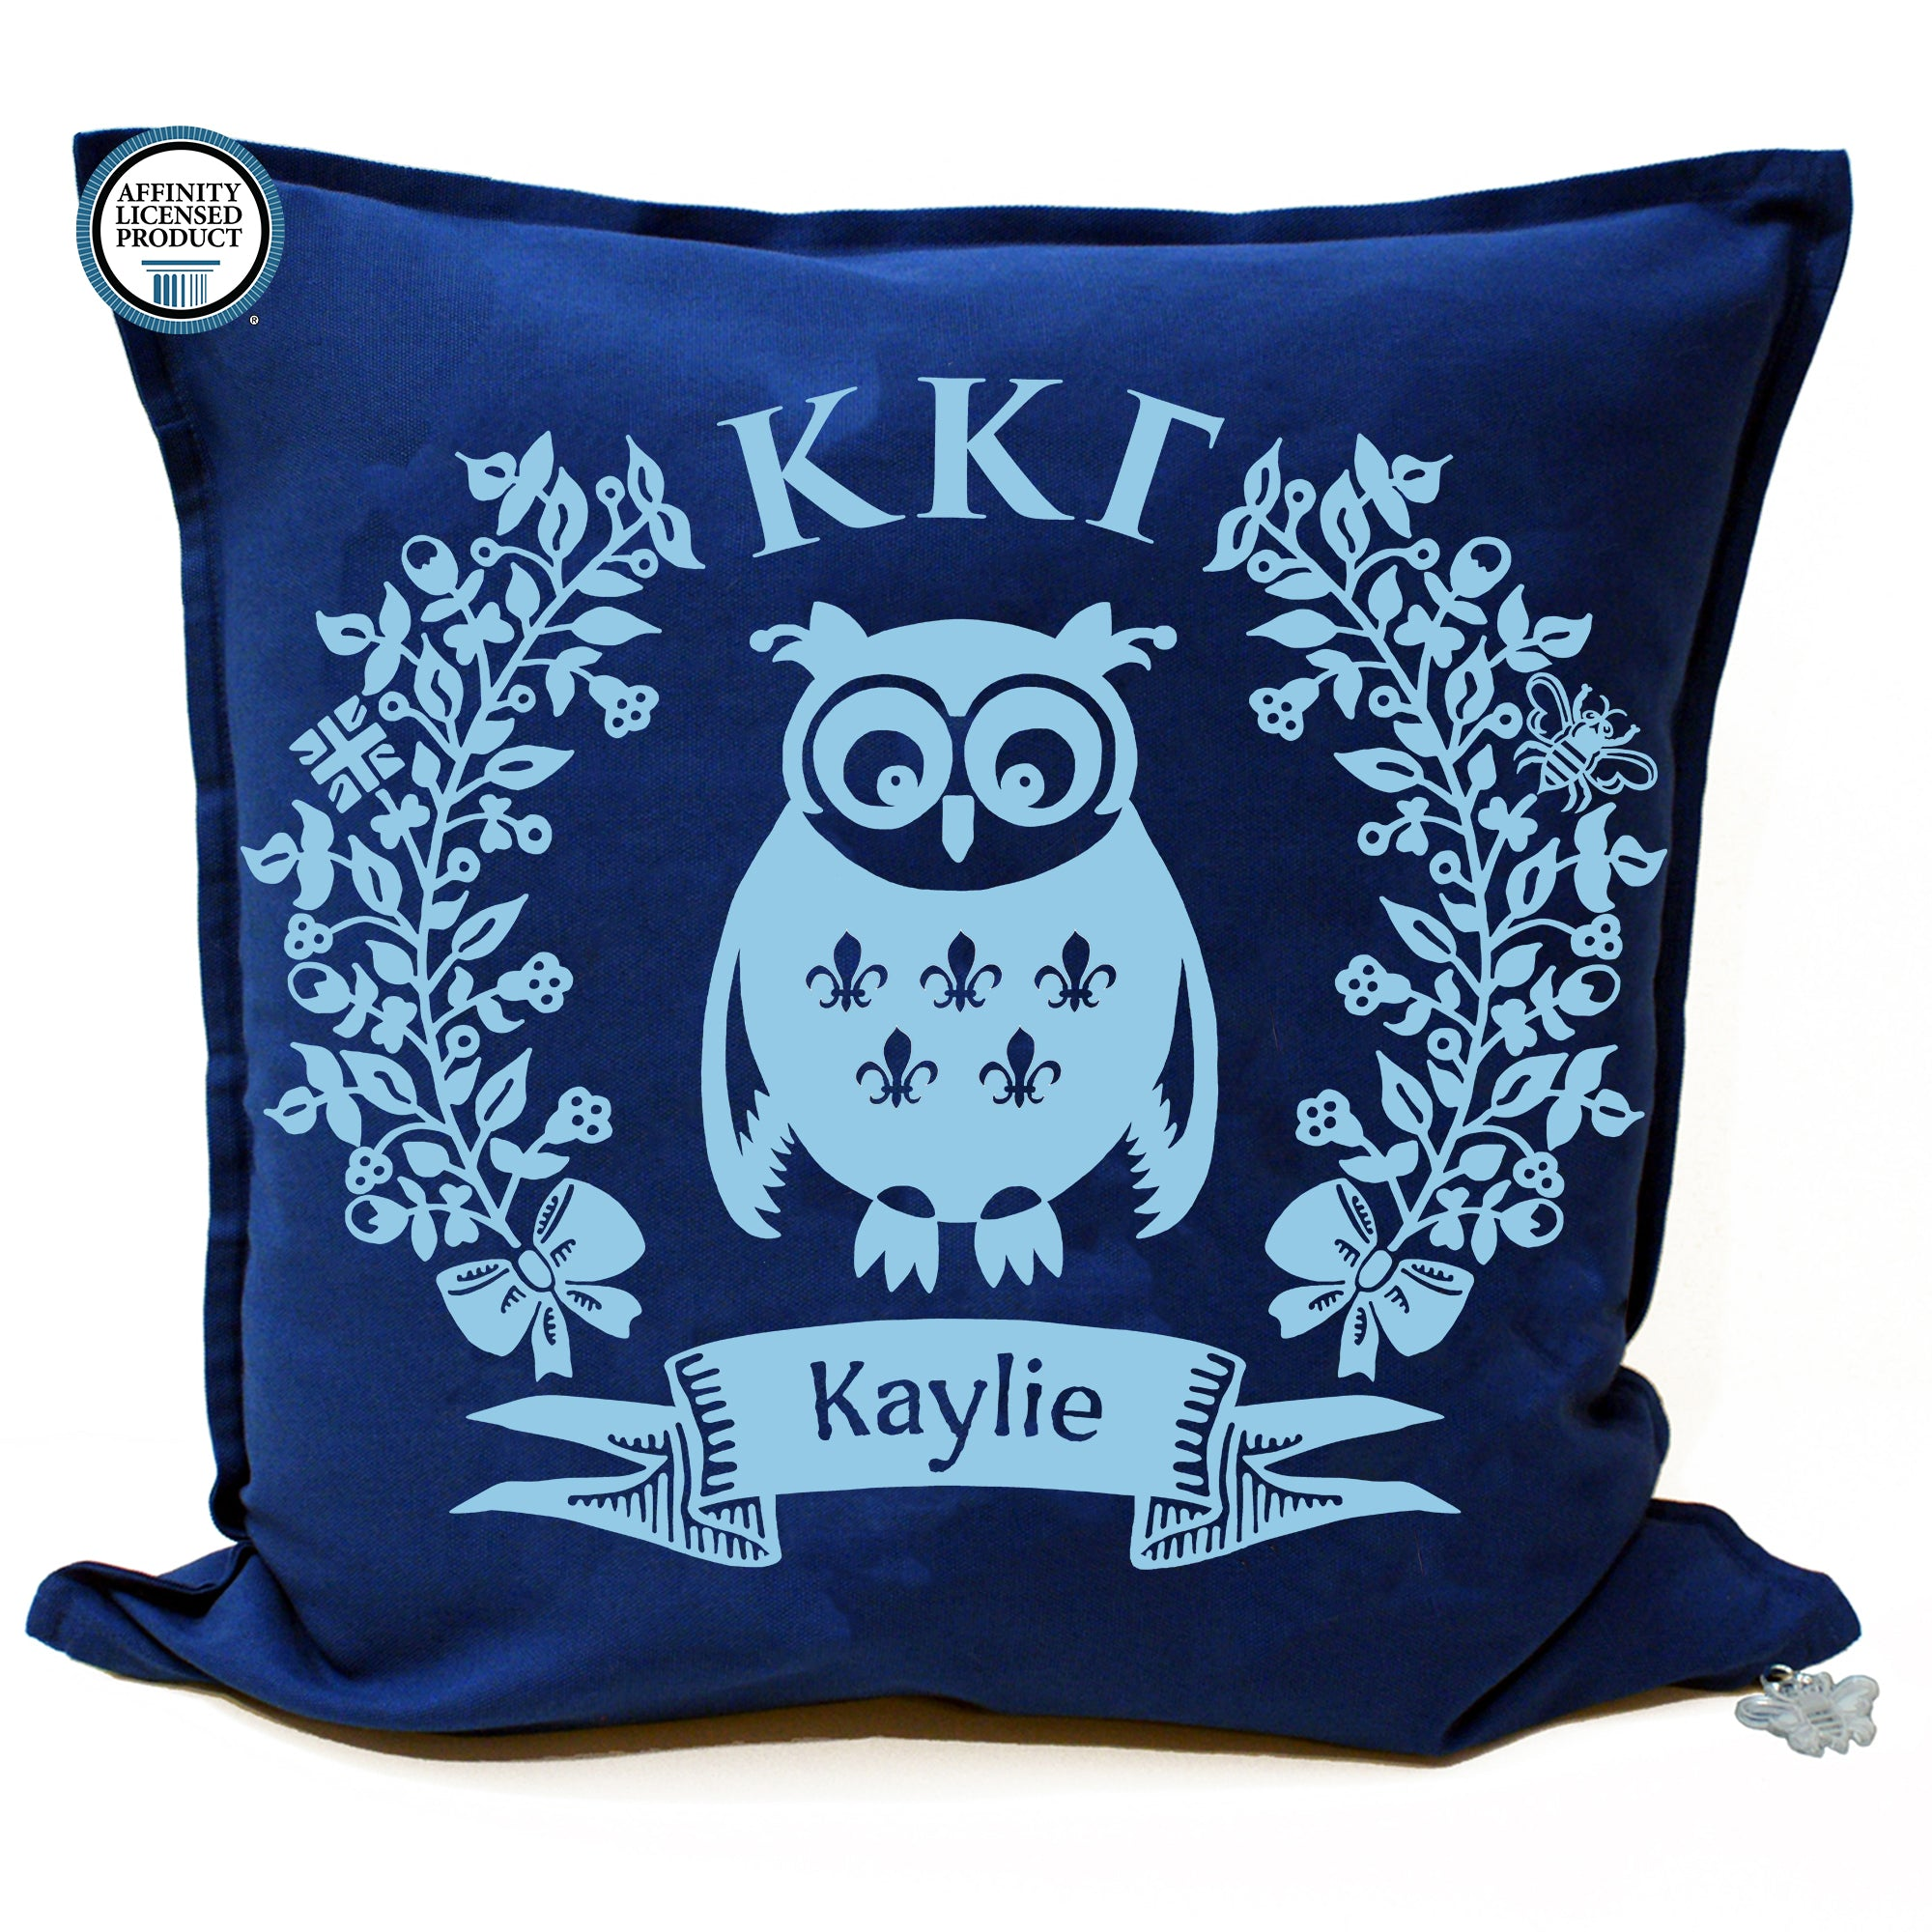 Kappa Kappa Gamma Pillow | Brit and Bee